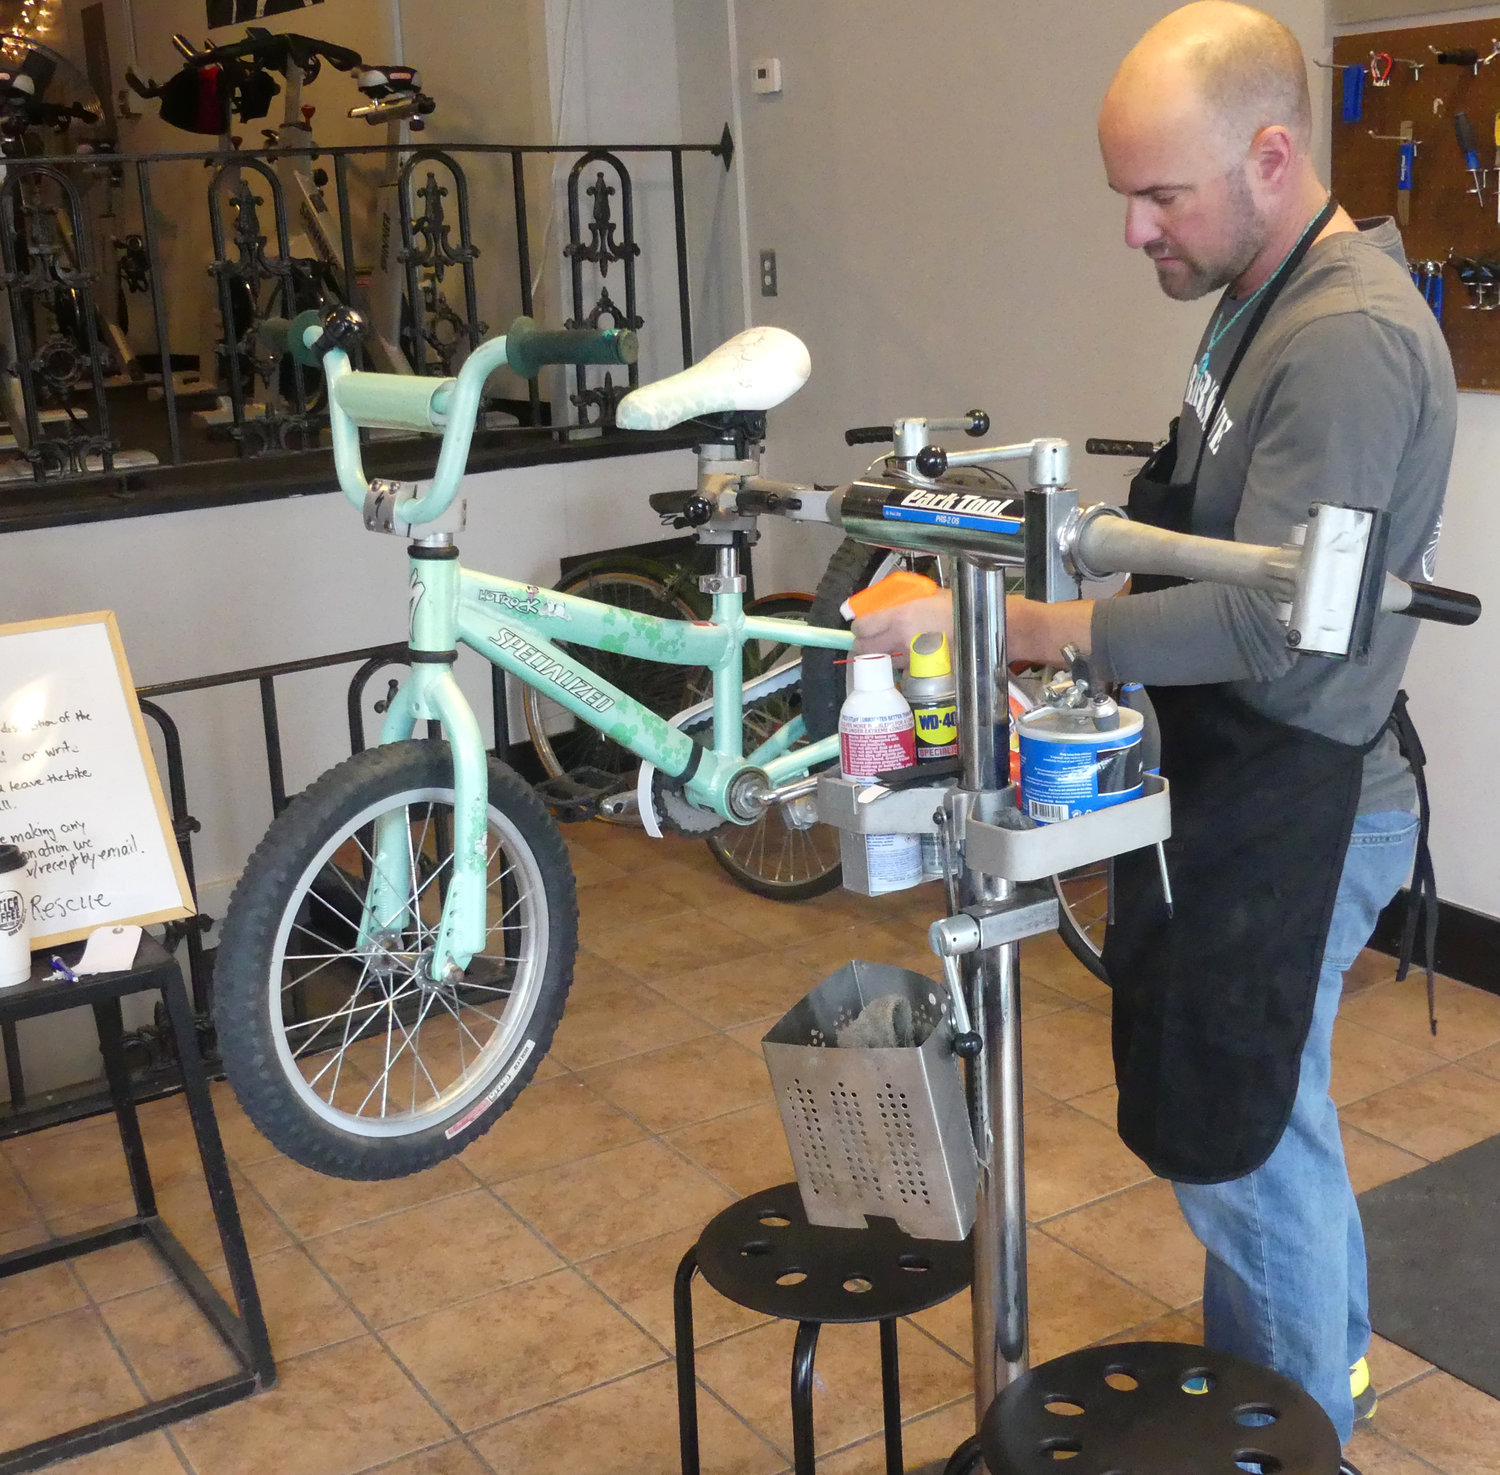 REPAIR AND MAINTENANCE — Matt VanSlyke, executive director of Utica Bike Rescue, repairs a girl's bike that will be resold while working in the organization's Clinton shop at 8 College St.